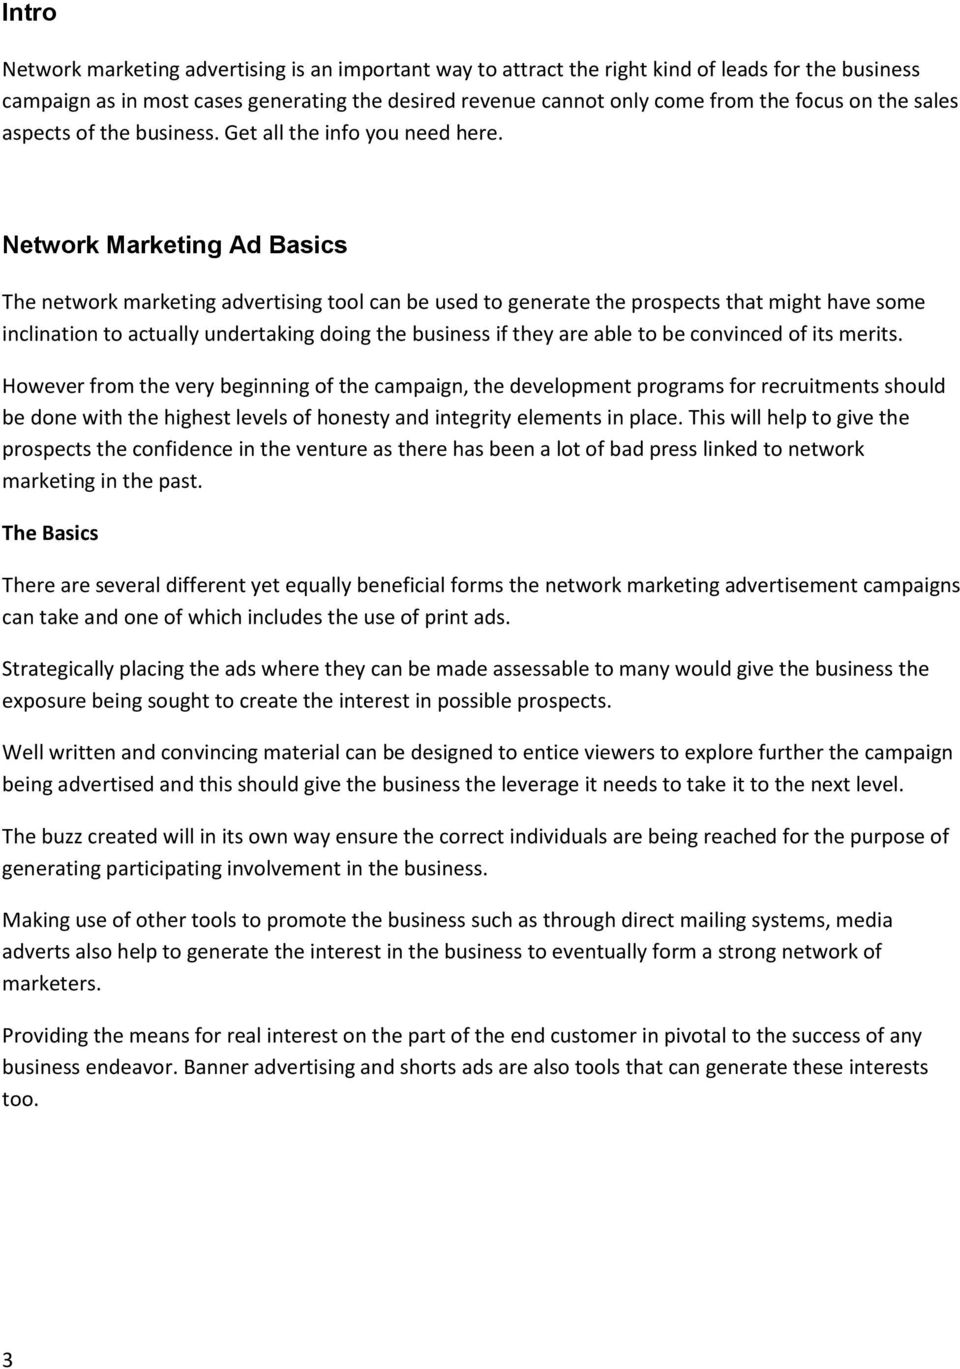 Network Marketing Ad Basics The network marketing advertising tool can be used to generate the prospects that might have some inclination to actually undertaking doing the business if they are able